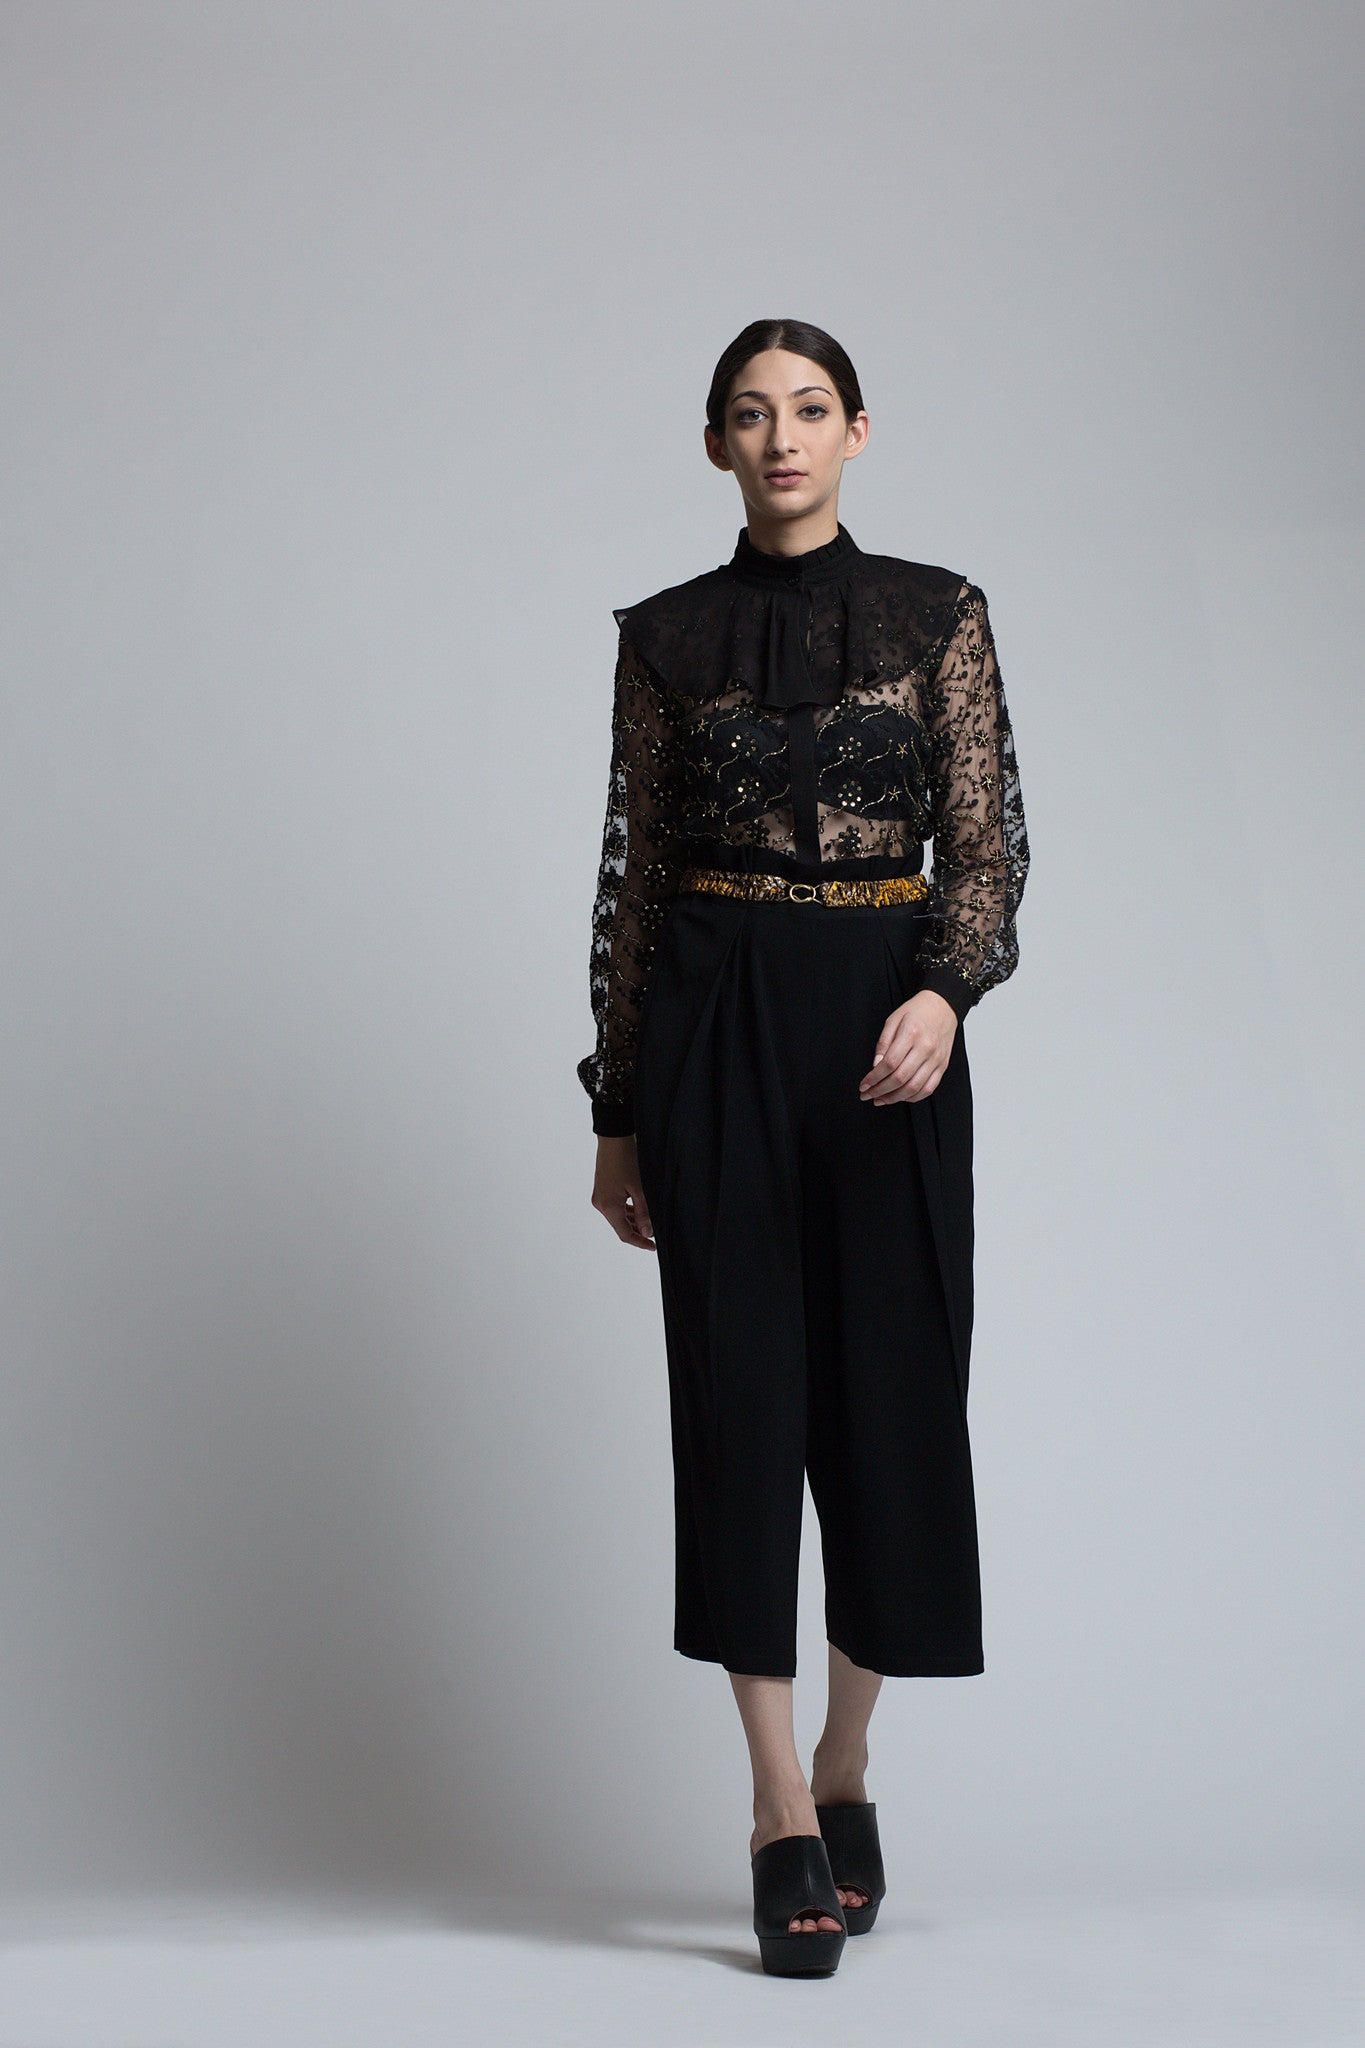 Black Floral Embroidered Shirt - Bhaavya Bhatnagar